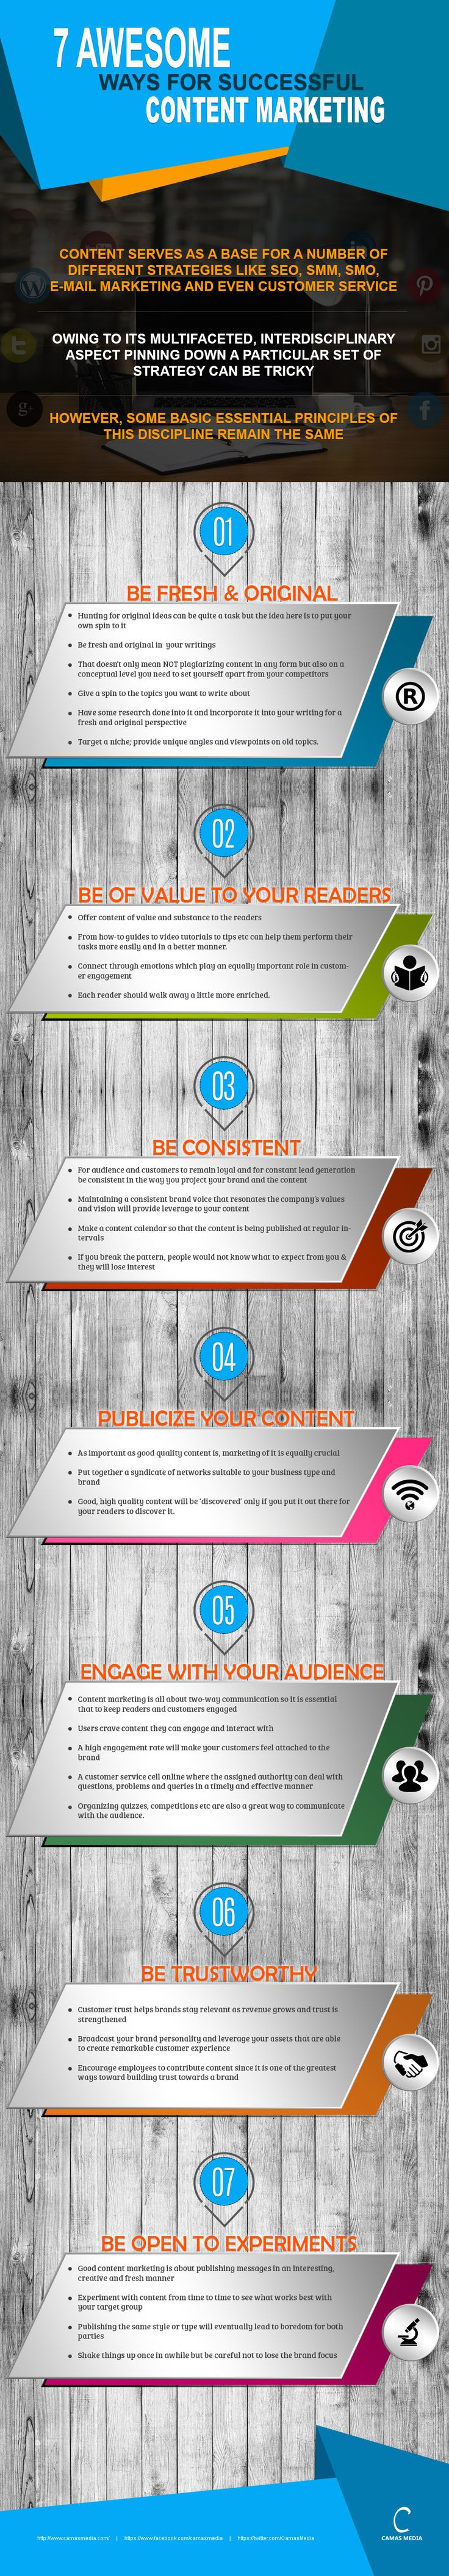 7 Must Follow Rules for #ContentMarketing Success